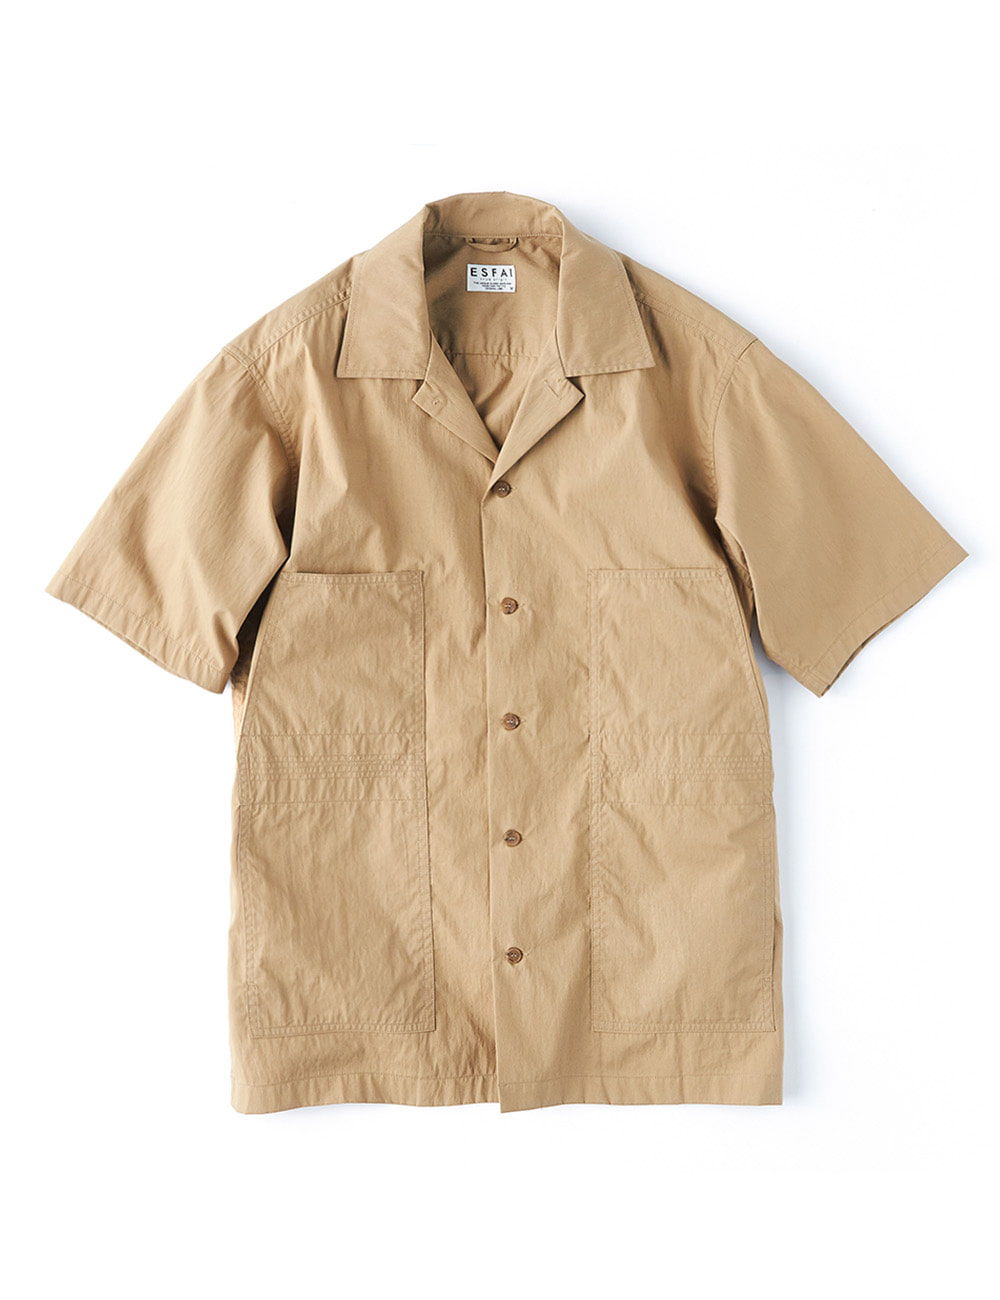 [ESFAI] Finger Stitch Shirts (Beige)